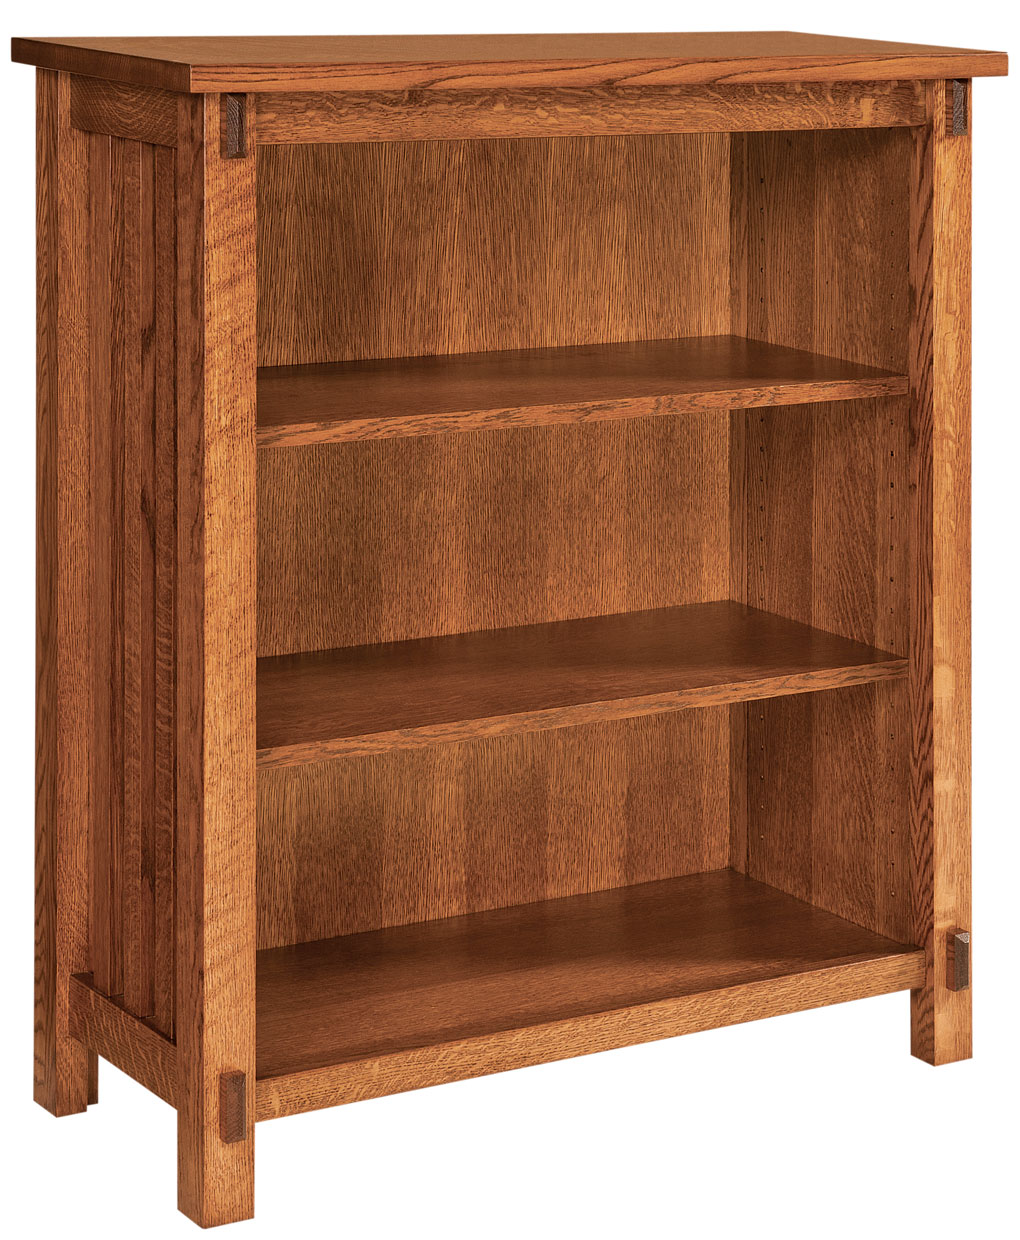 bookcases with pedestal and bed products amish storage low headboard furniture drawers or wood platform bookcase queen profile solid